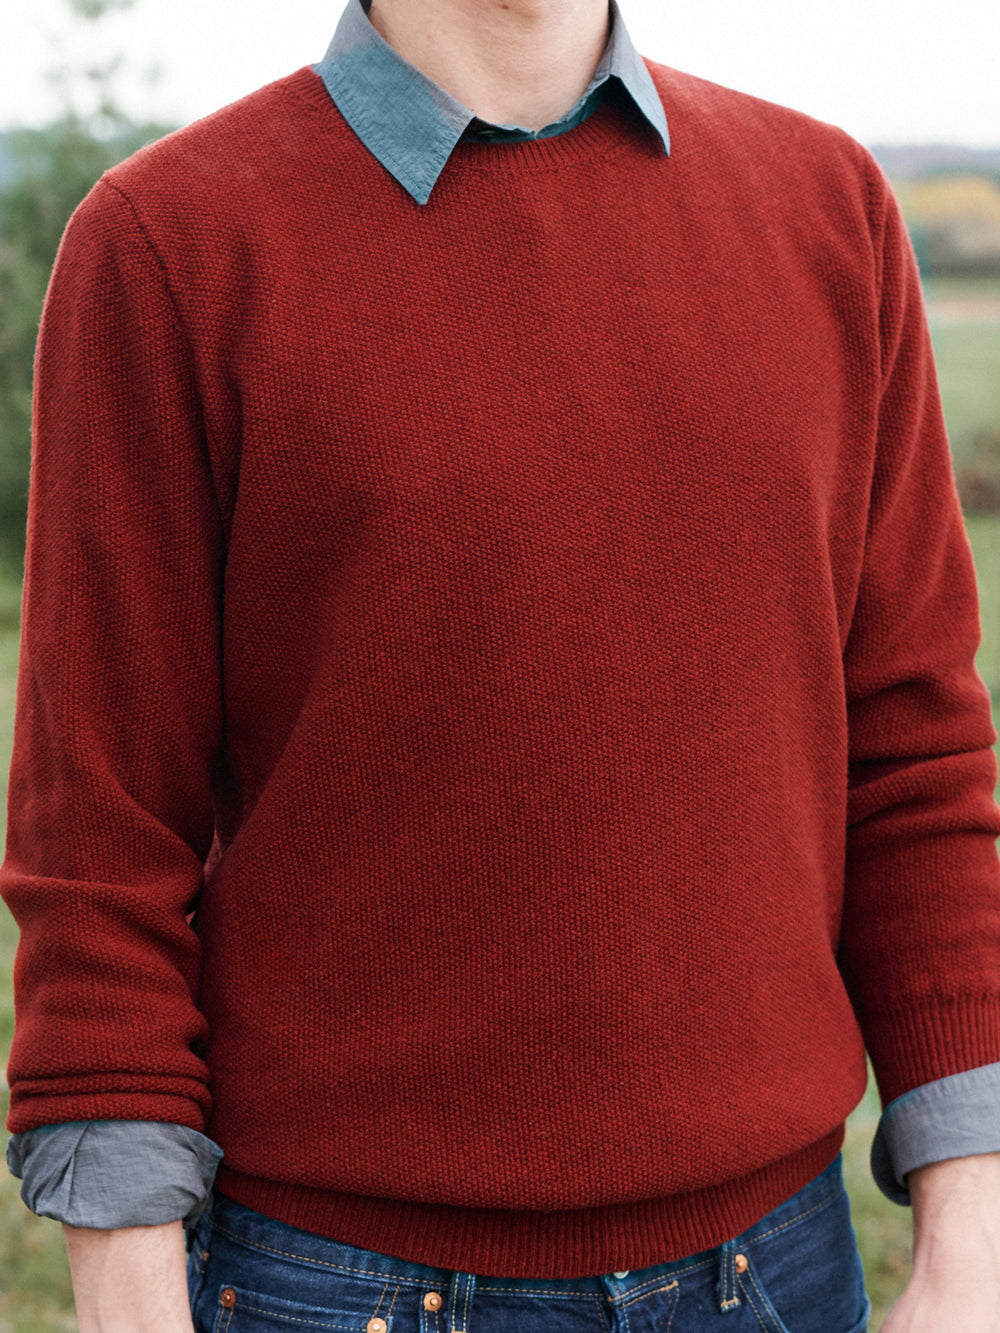 LARRY / MERINO WOOL / RUSTY RED